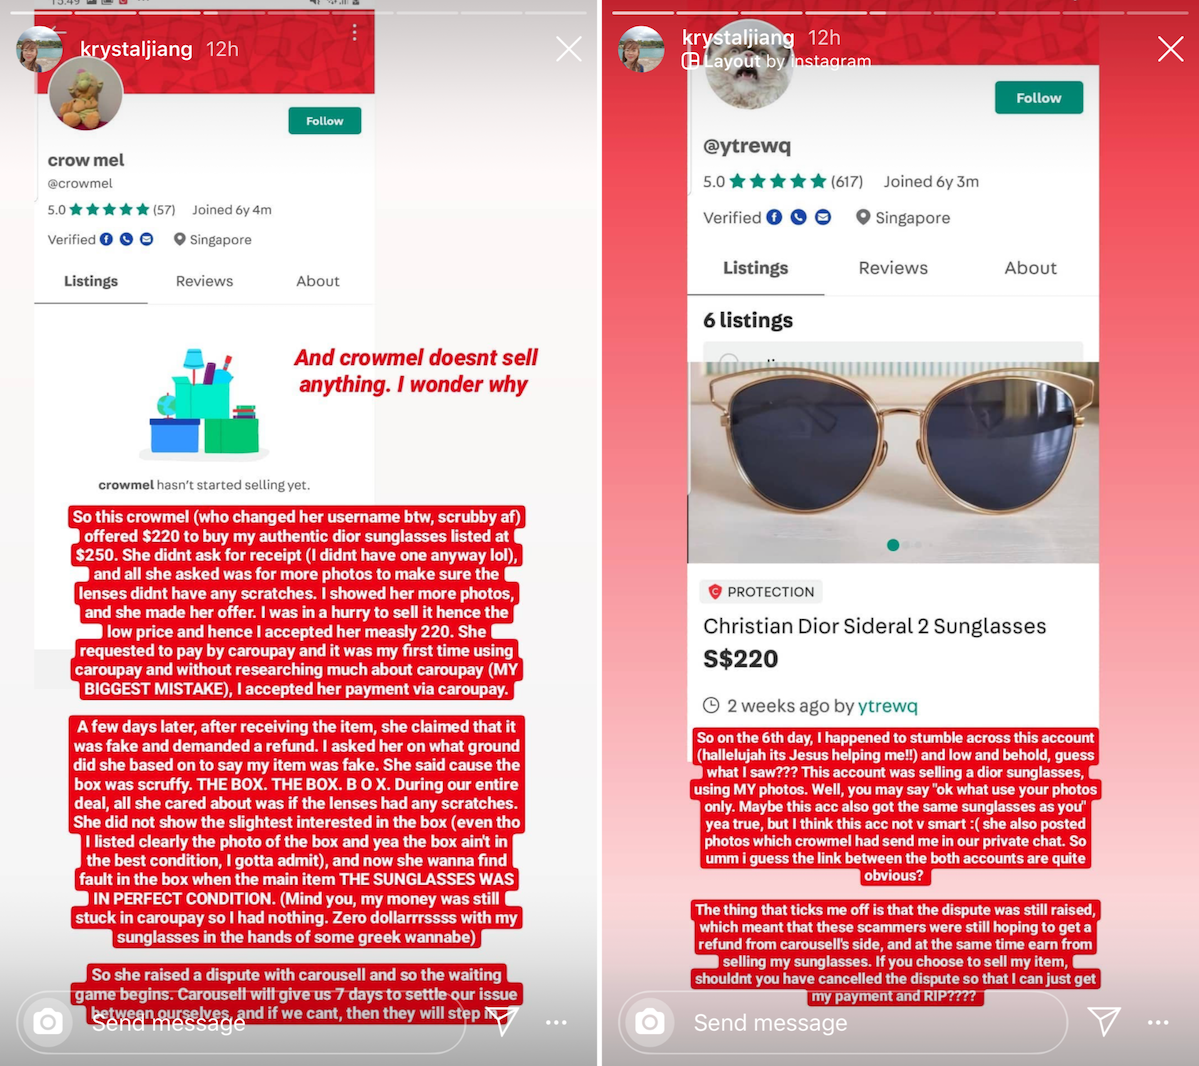 common scams in Singapore - Carousell scams using Caroupay to refund payment.